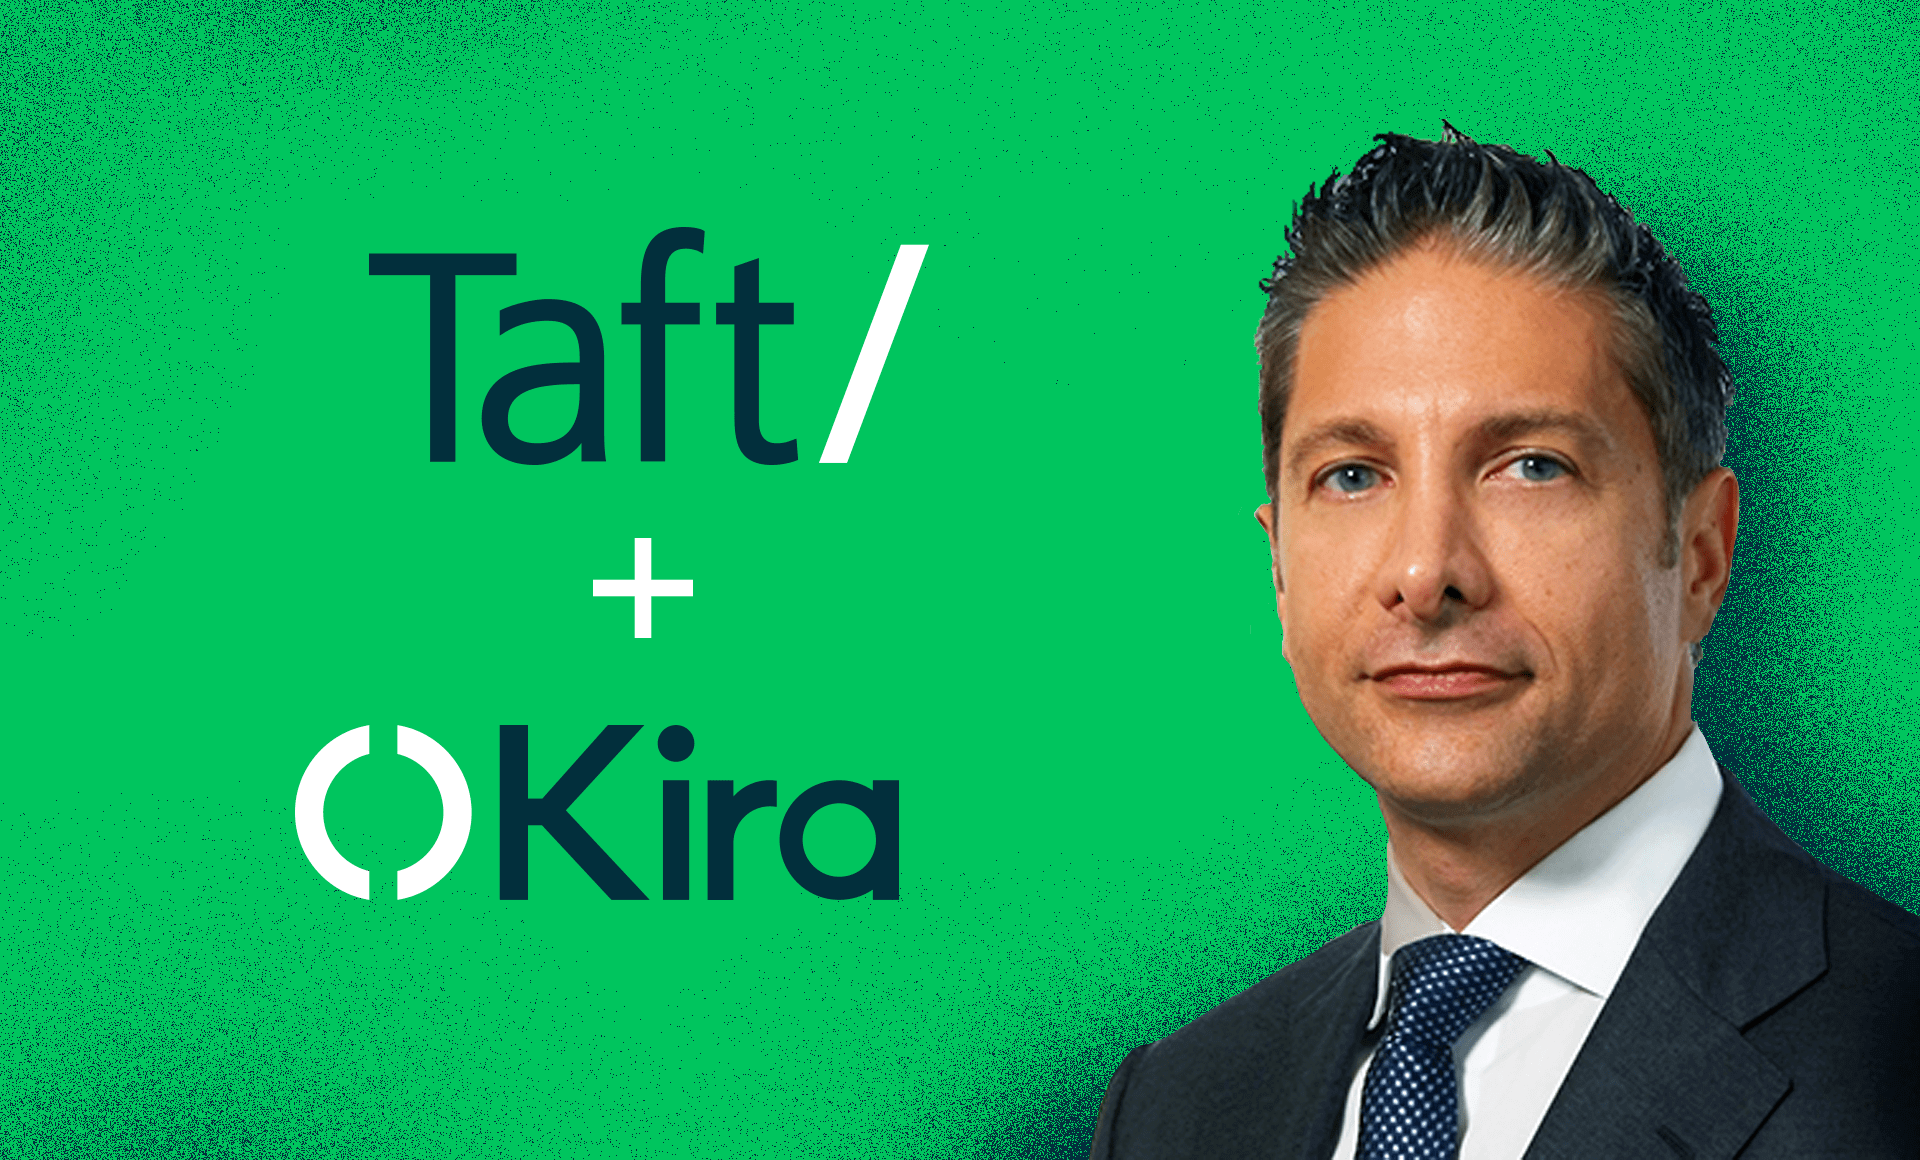 Read the blog article: Taft Stettinius & Hollister LLP Adopts Kira Across its Mergers and Acquisitions Practice to Enhance Due Diligence Processes